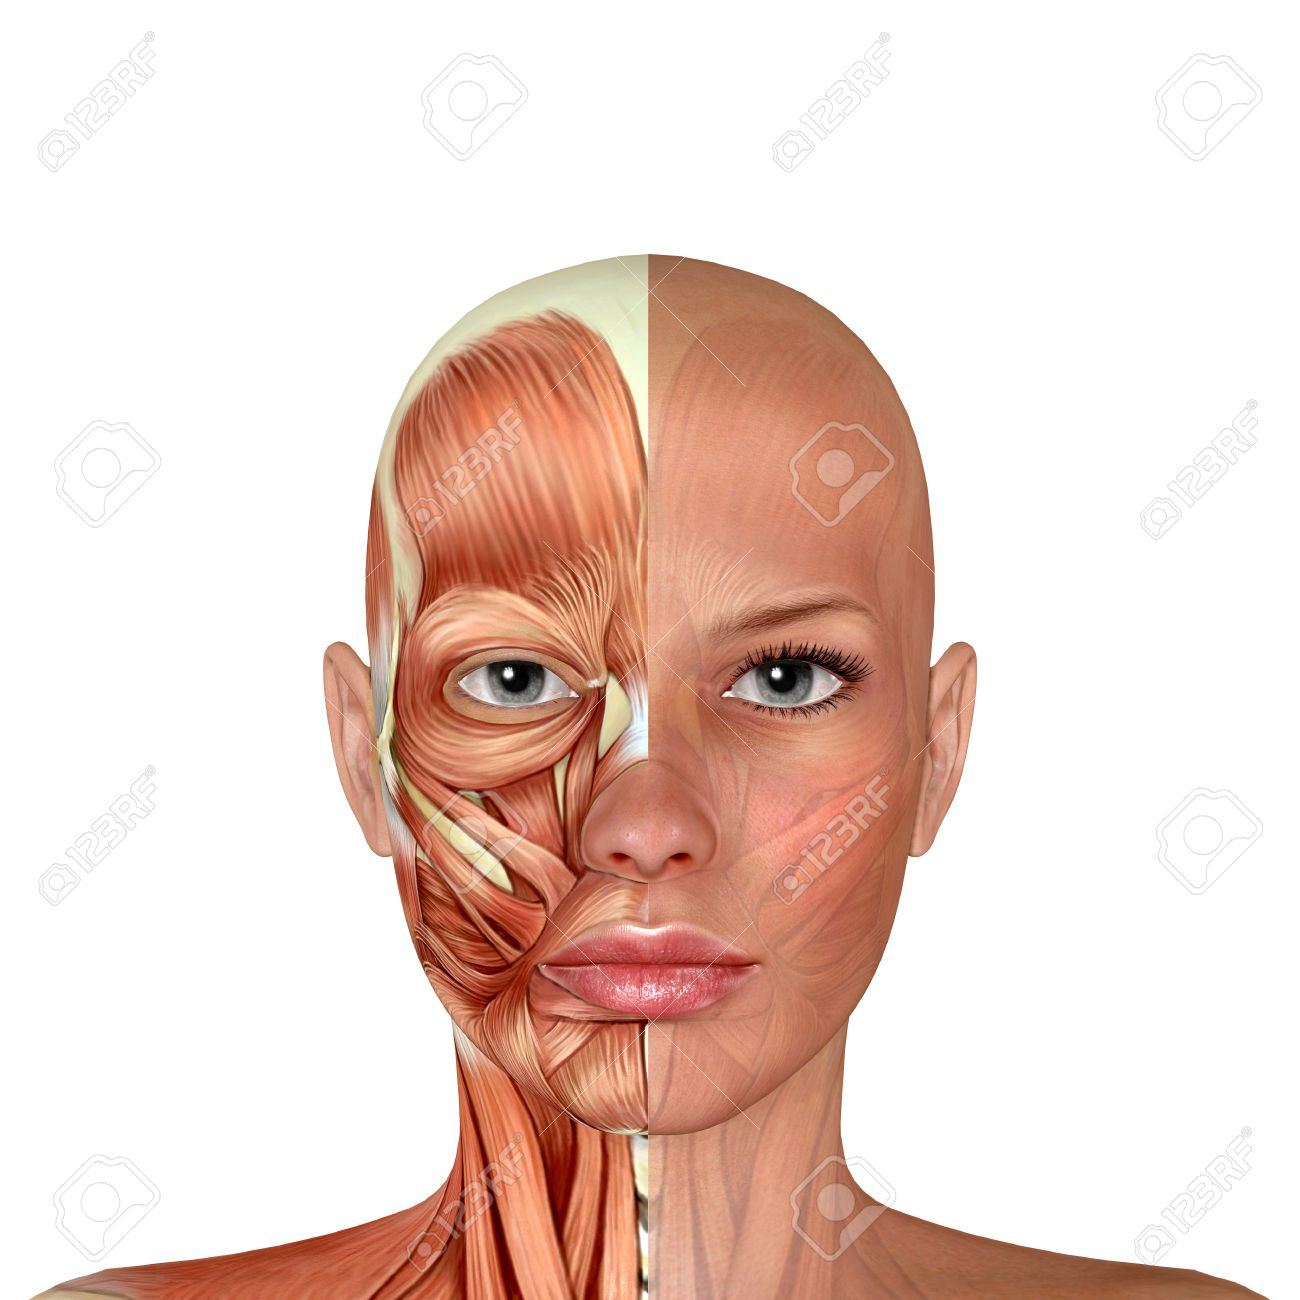 3d Female Face Muscles Anatomy Stock Photo, Picture And Royalty Free ...